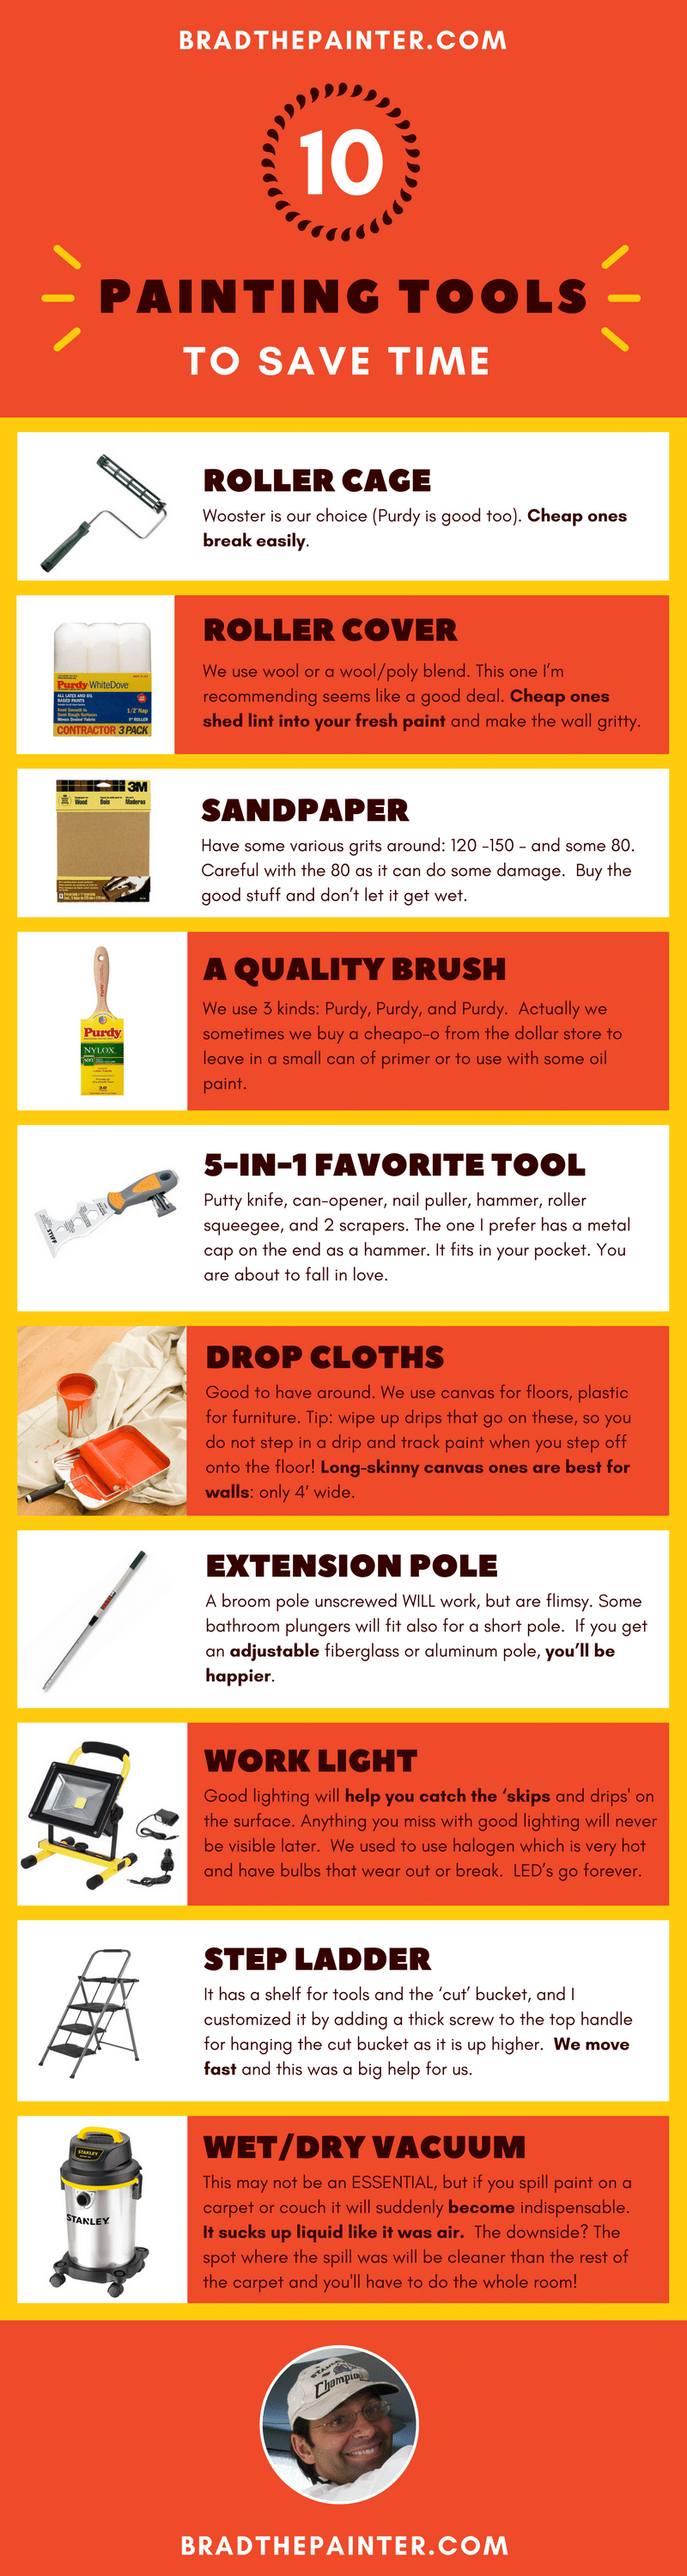 Painting Tools Infographic